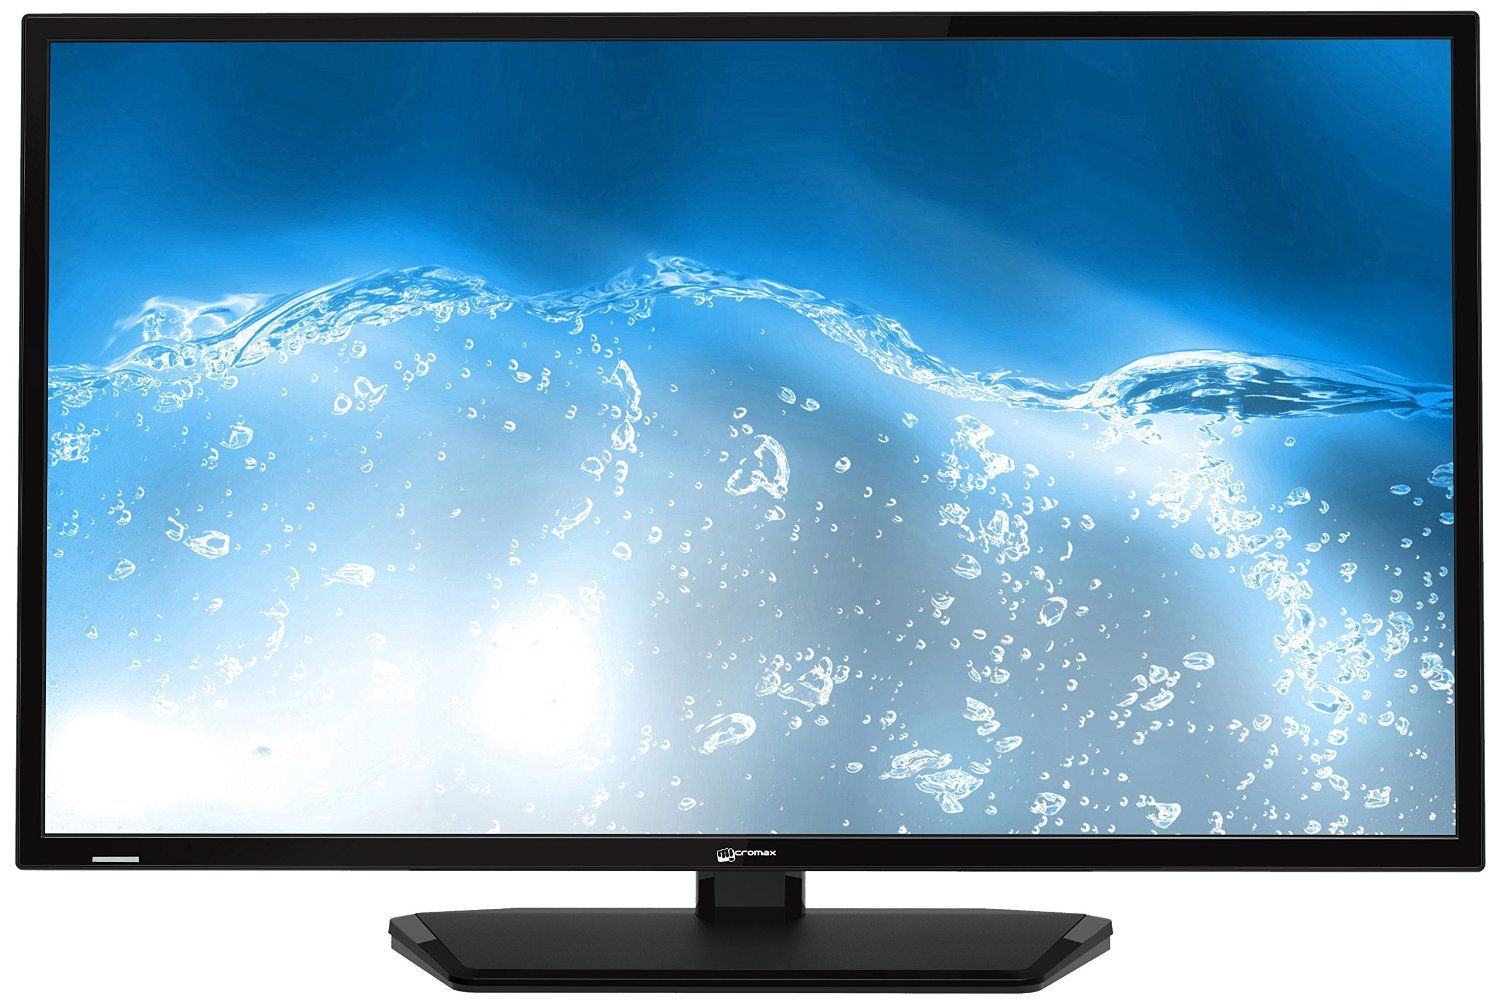 micromax 32inch hd tv in more offer on tv http amazonoffer. Black Bedroom Furniture Sets. Home Design Ideas